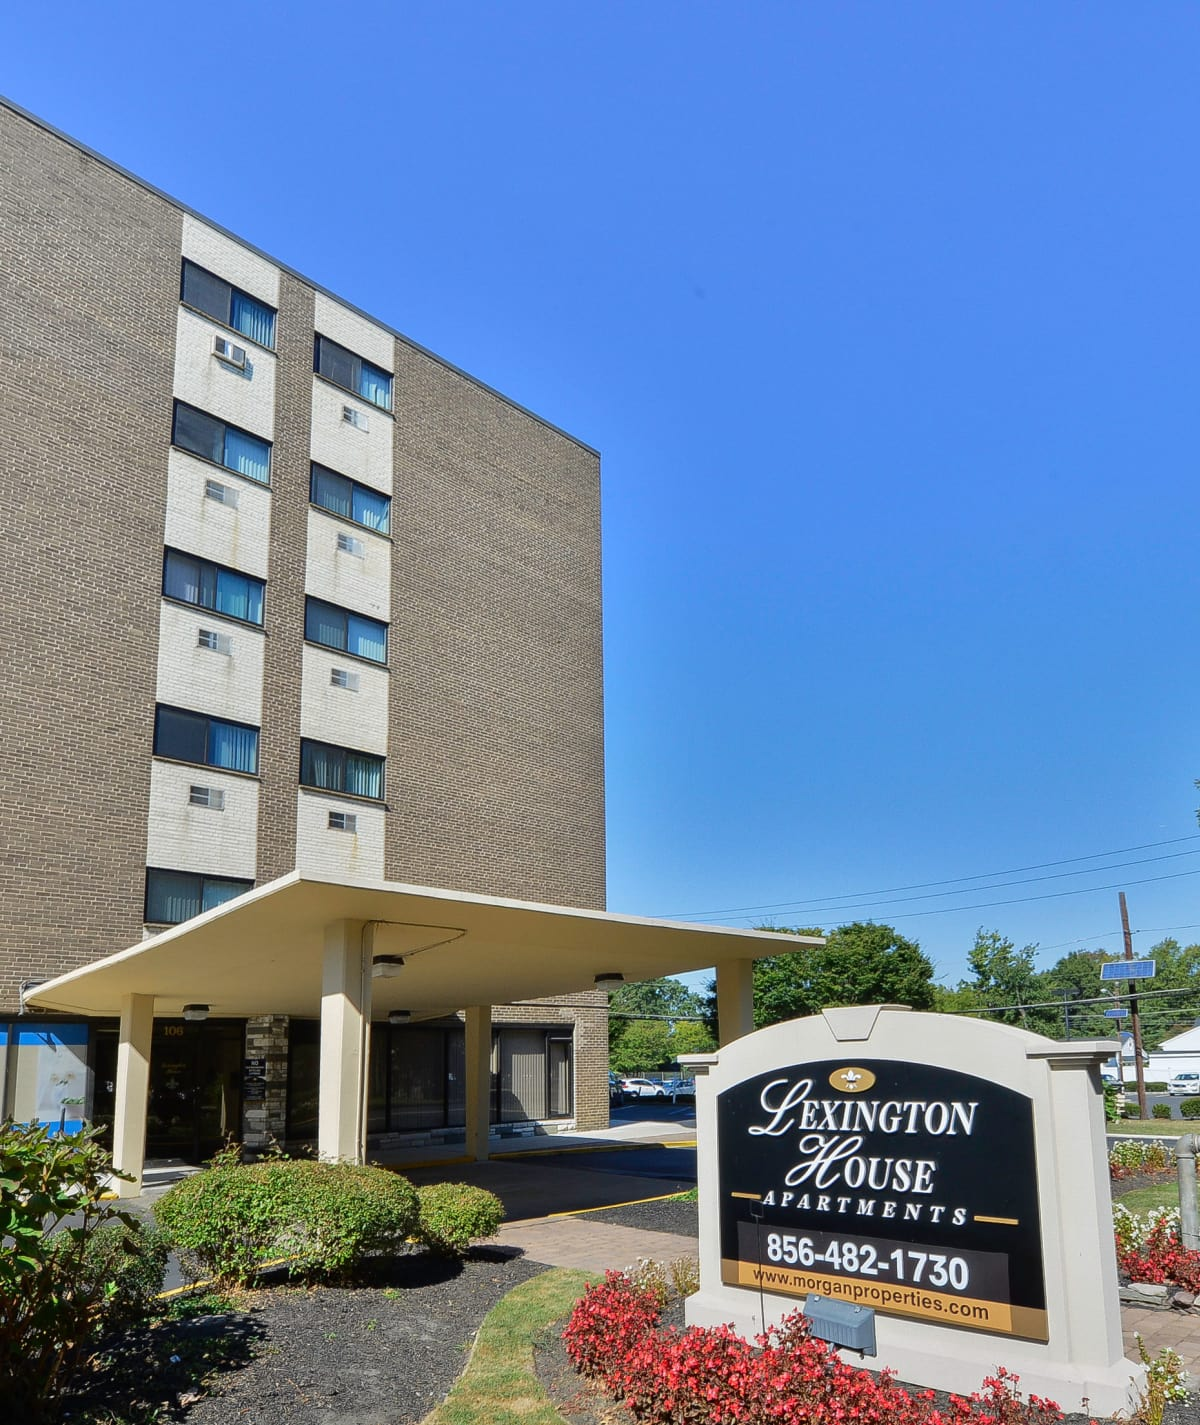 Morgan Grove Apartments: Apartments In Cherry Hill, NJ On Chestnut St